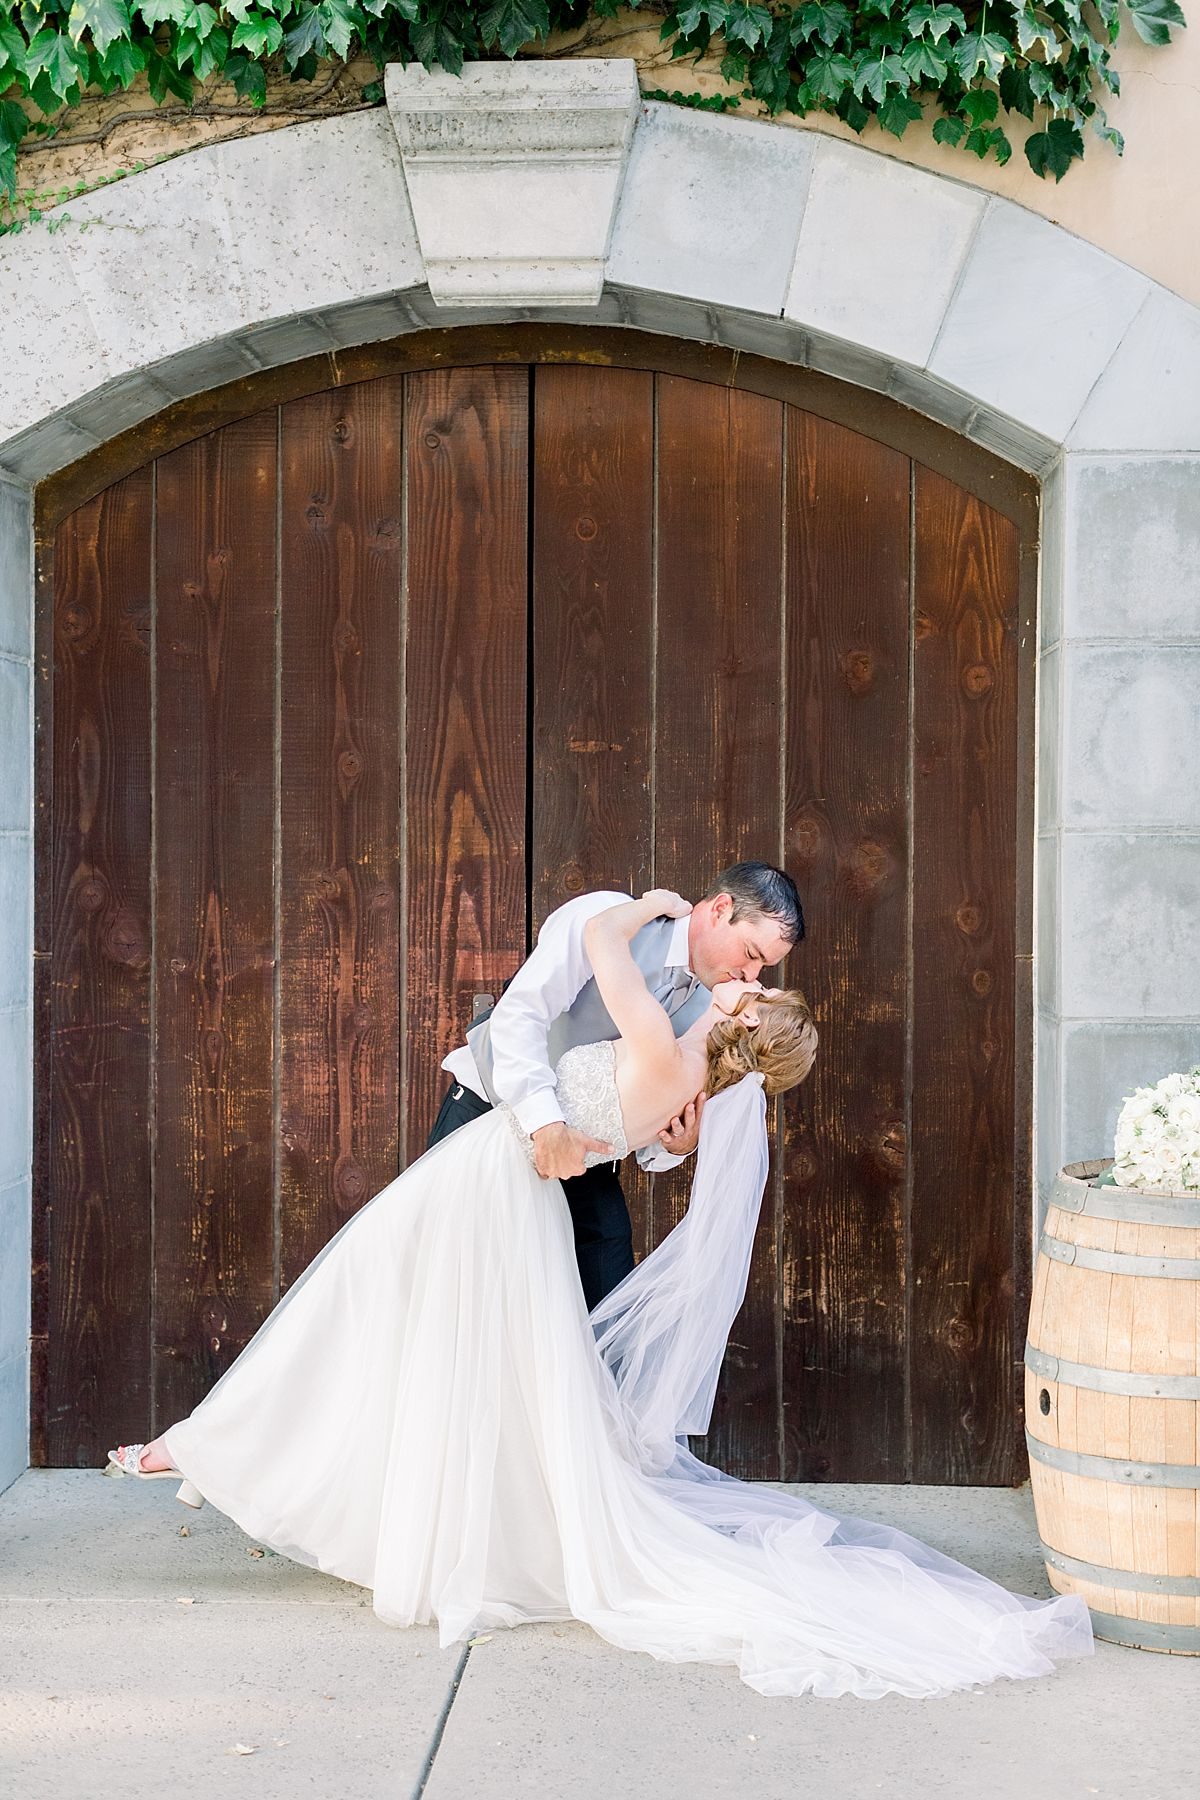 Wine and Roses Wedding - Wine and Roses Lodi Wedding Photographer - Sacramento Film Wedding Photographer - Ashley Baumgartner - Sacramento Luxury Wedding Photographer_0043.jpg